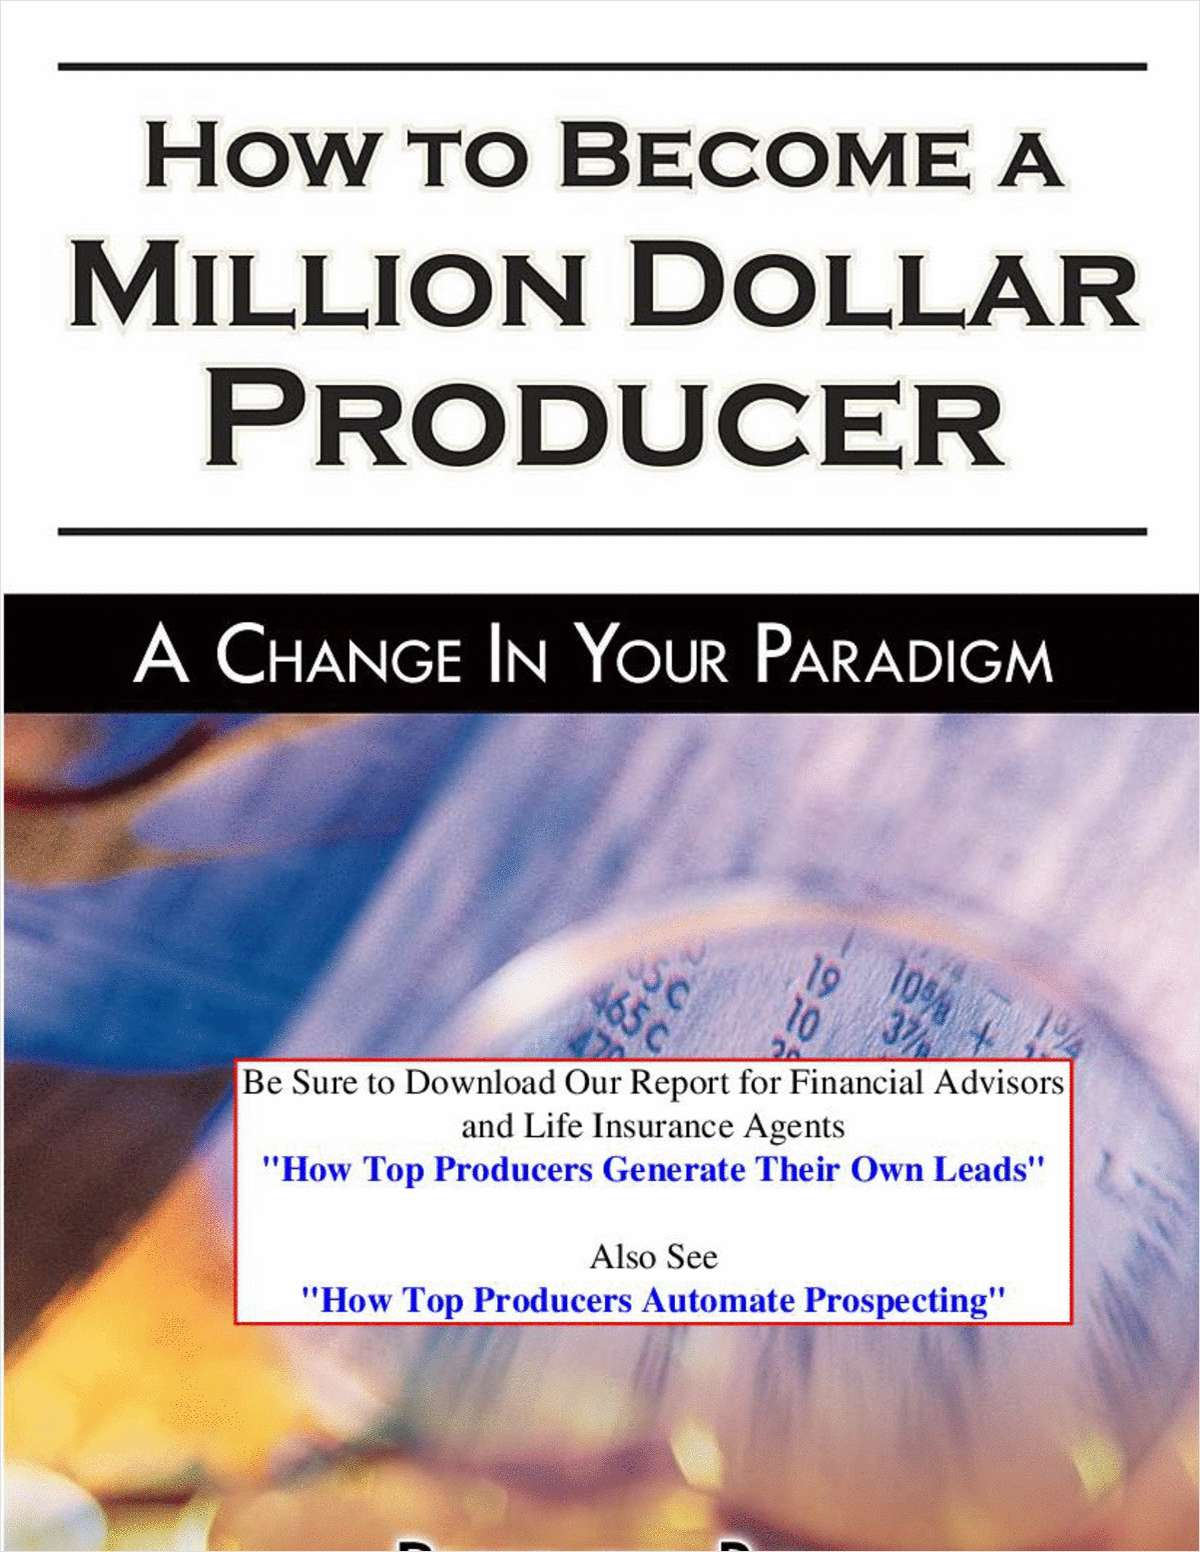 Become a Million Dollar Producer